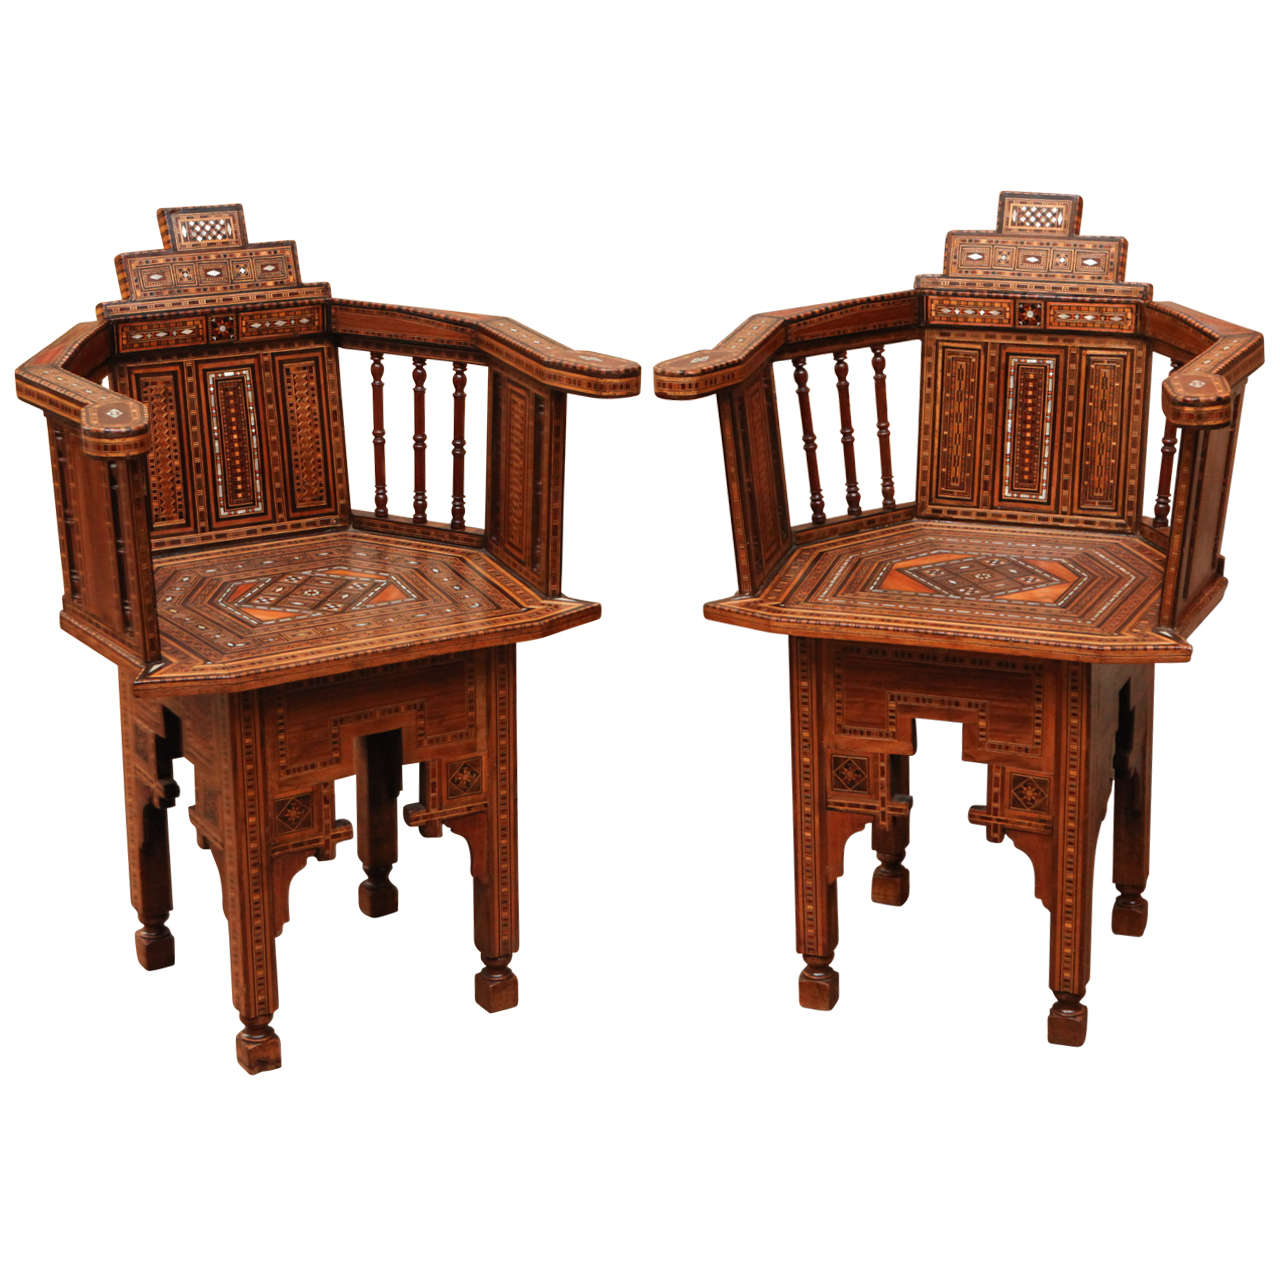 Charmant Pair Of Mother Of Pearl Inlay Moroccan Chairs For Sale